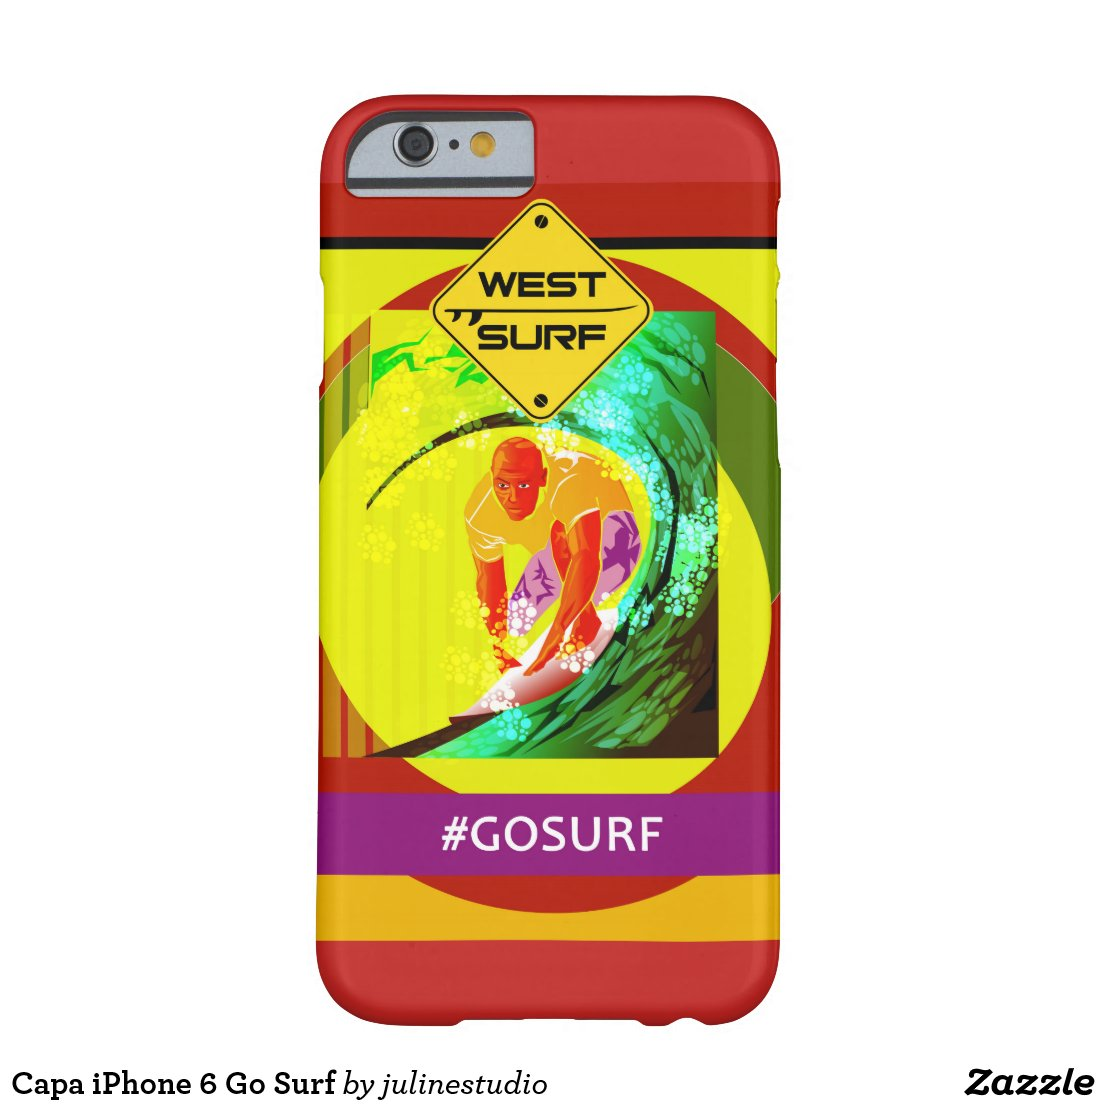 Capa iPhone 6 Go Surf